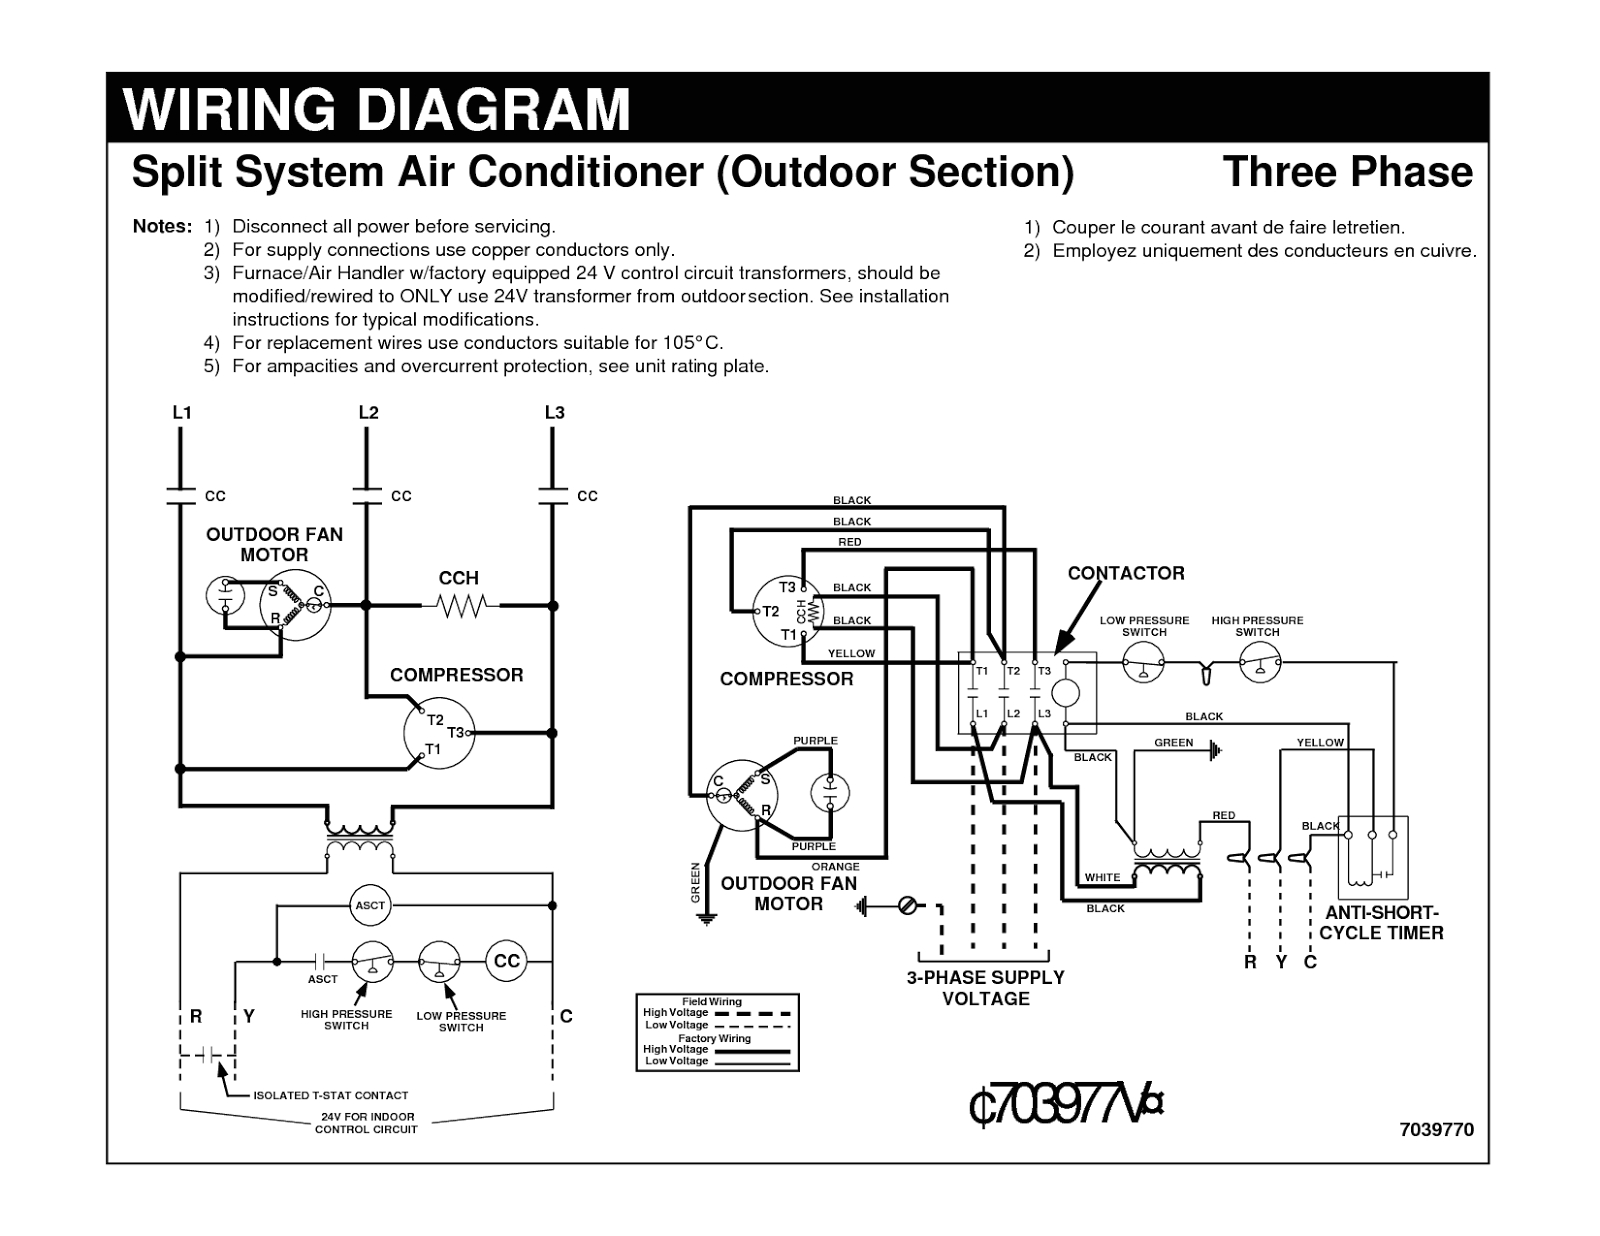 air conditioning wiring diagrams wiring diagram databaseelectrical wiring diagrams for air conditioning systems